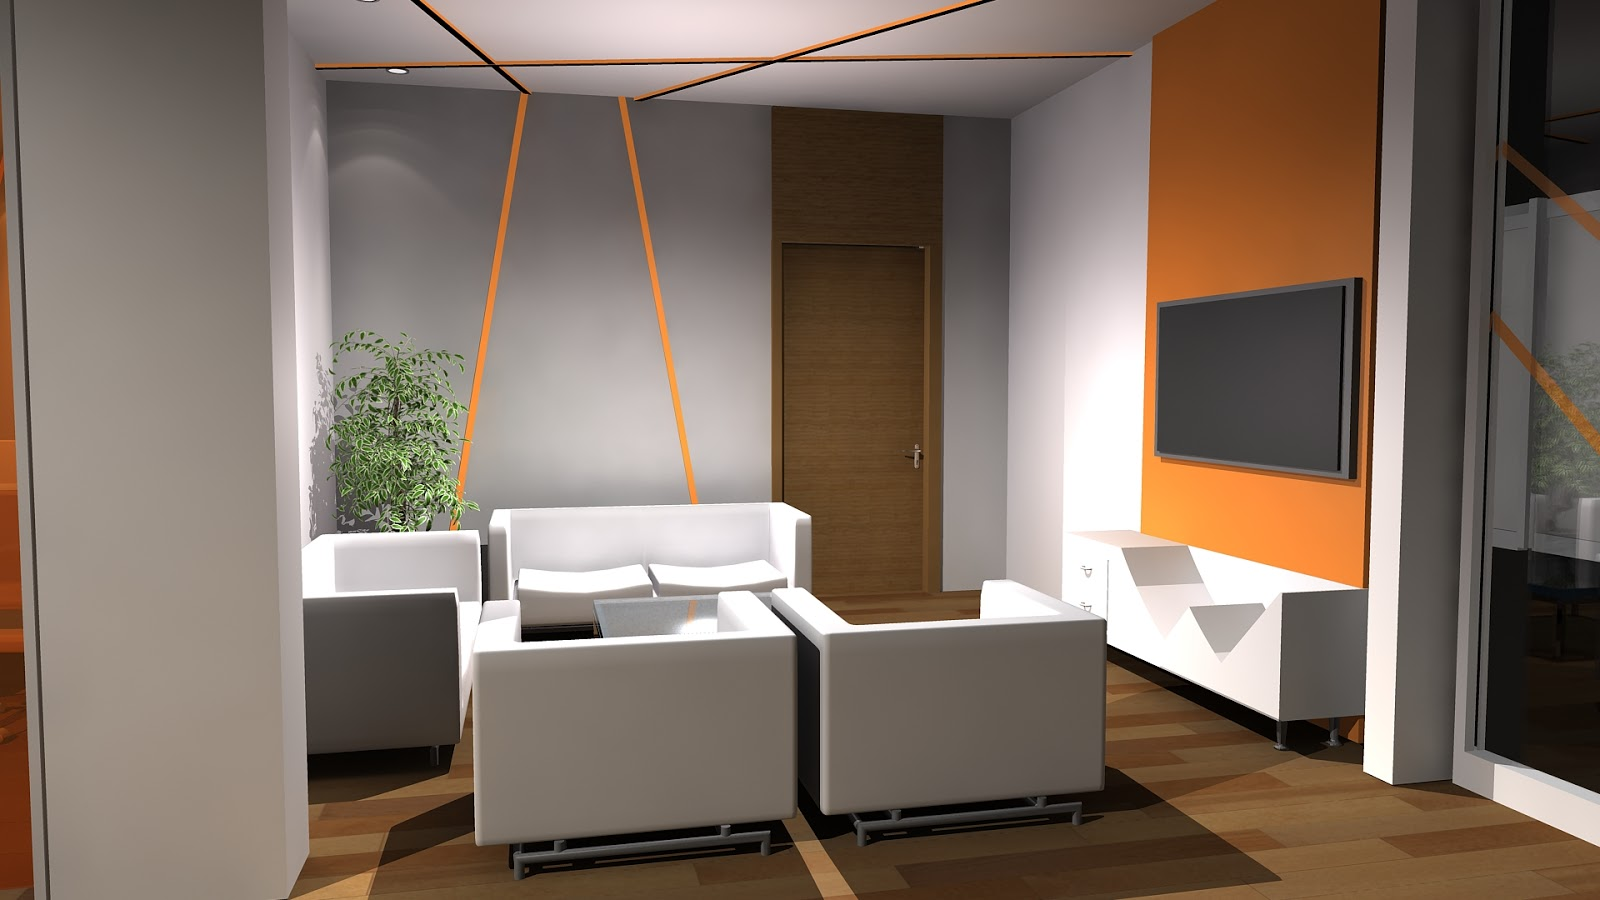 Sajid designer interior design office 3ds max for 3ds max design